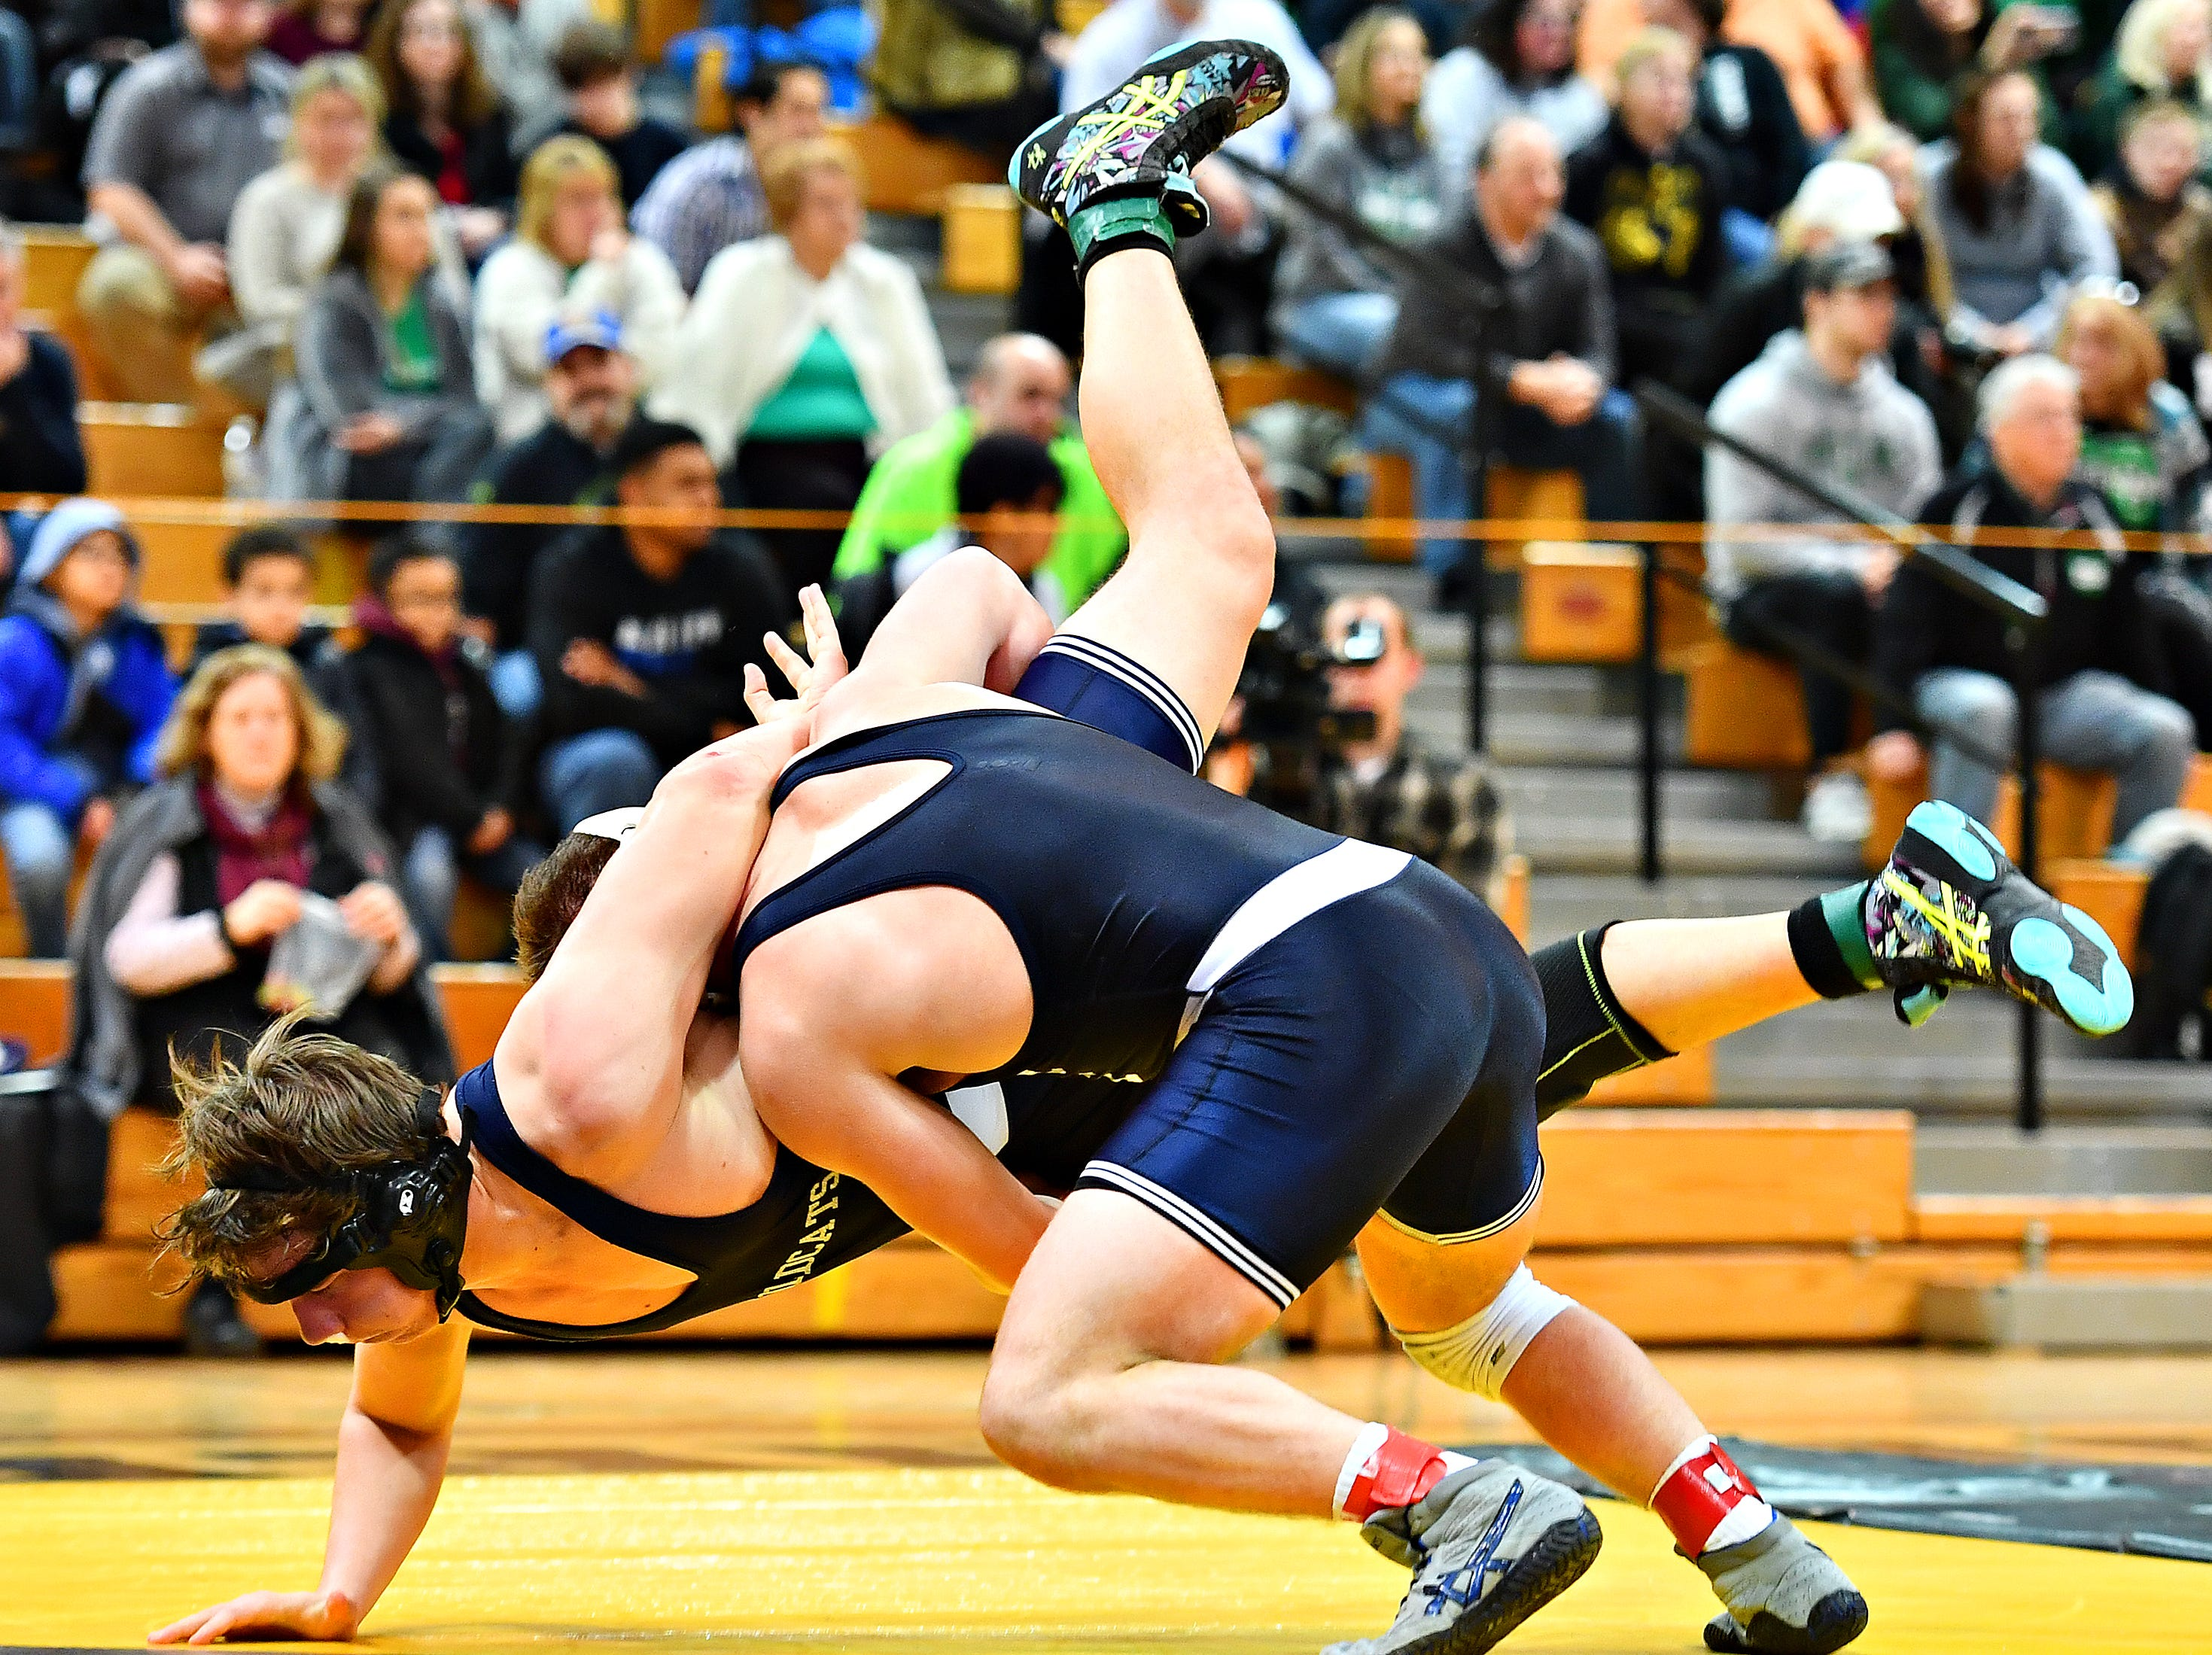 Dallastown's Andrew Smith, left, wrestles Cedar Cliff's Donovan Ball in the 195 pound weight class during District 3, Class 3A wrestling championship action at Milton Hershey High School in Hershey, Saturday, Feb. 2, 2019. Dawn J. Sagert photo